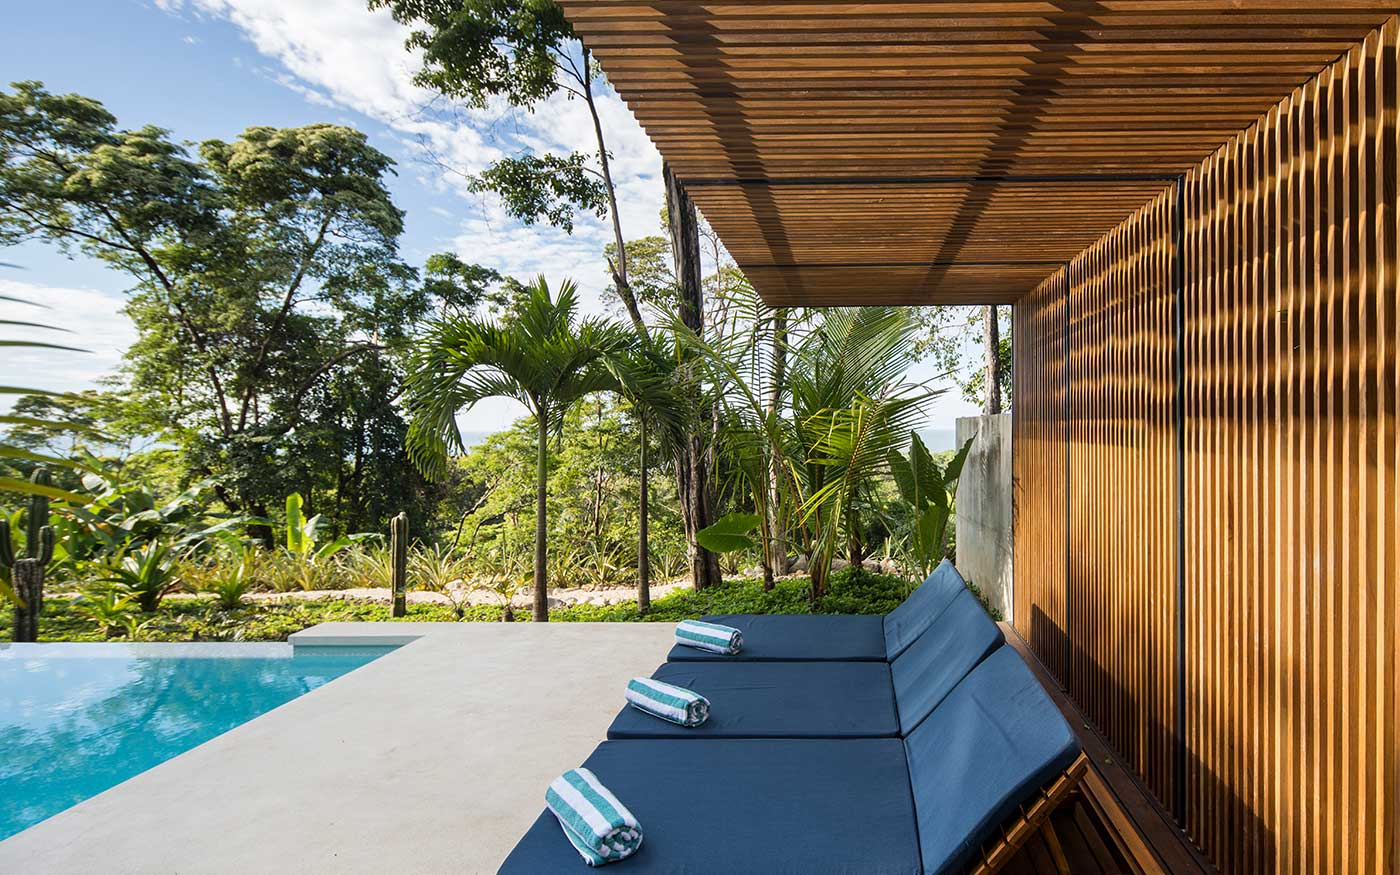 Sustainable architecture firm in costa rica modern homes for Sustainable architecture firms